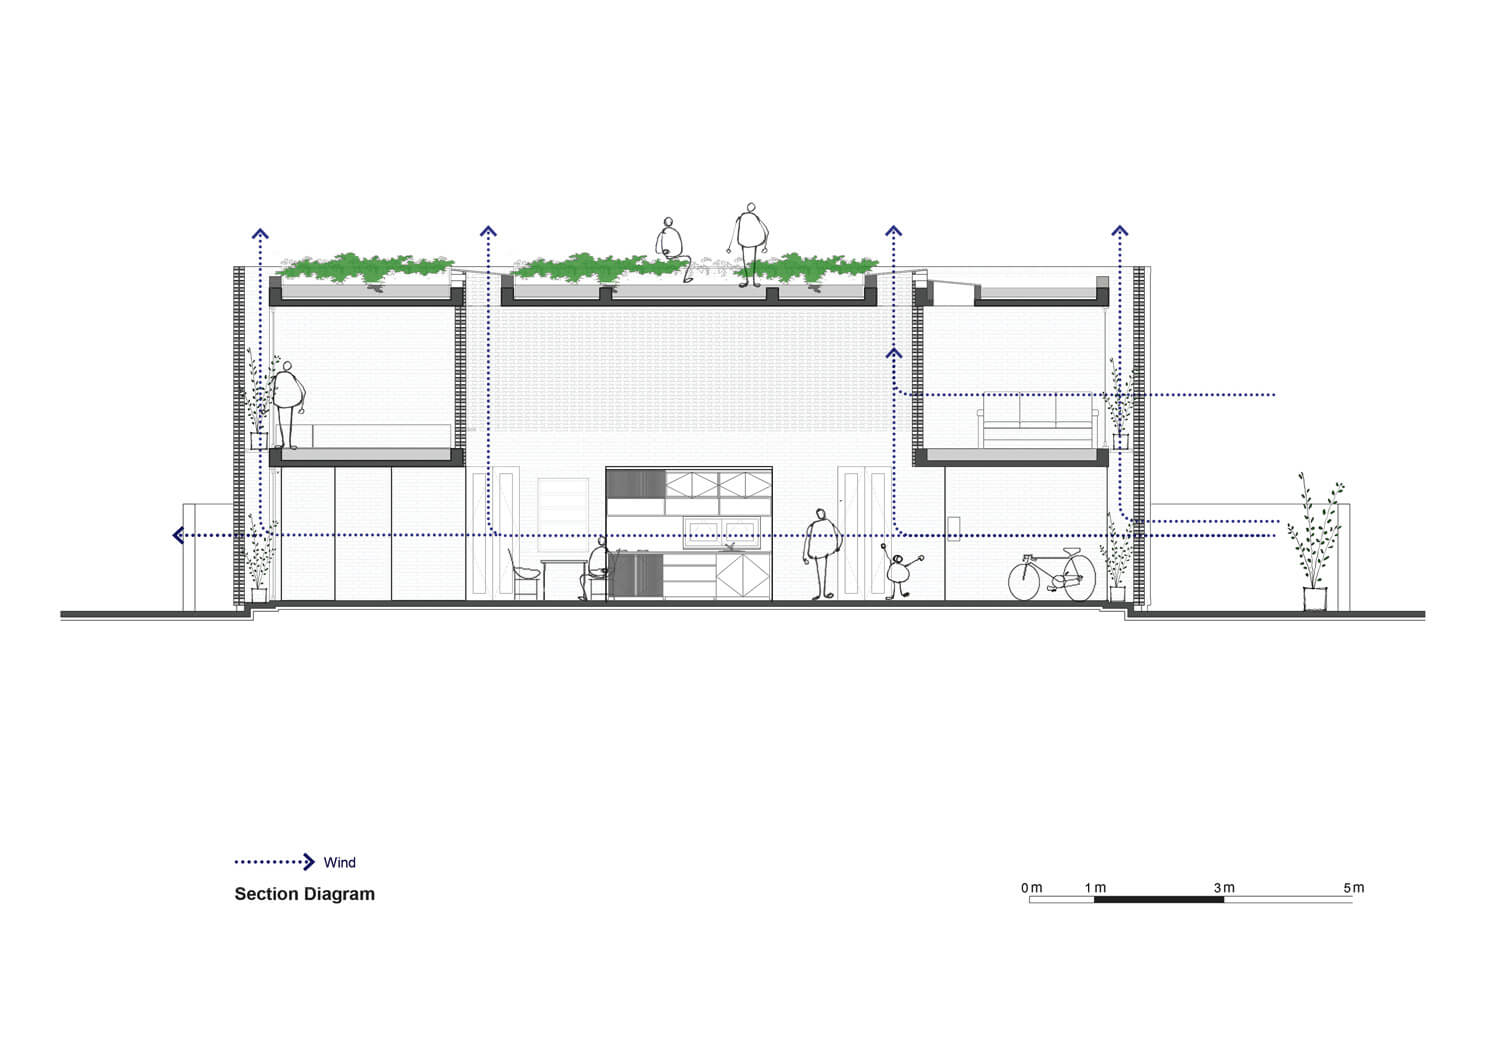 architecture section diagram 2002 chevy cavalier radio wiring termitary house tropical space